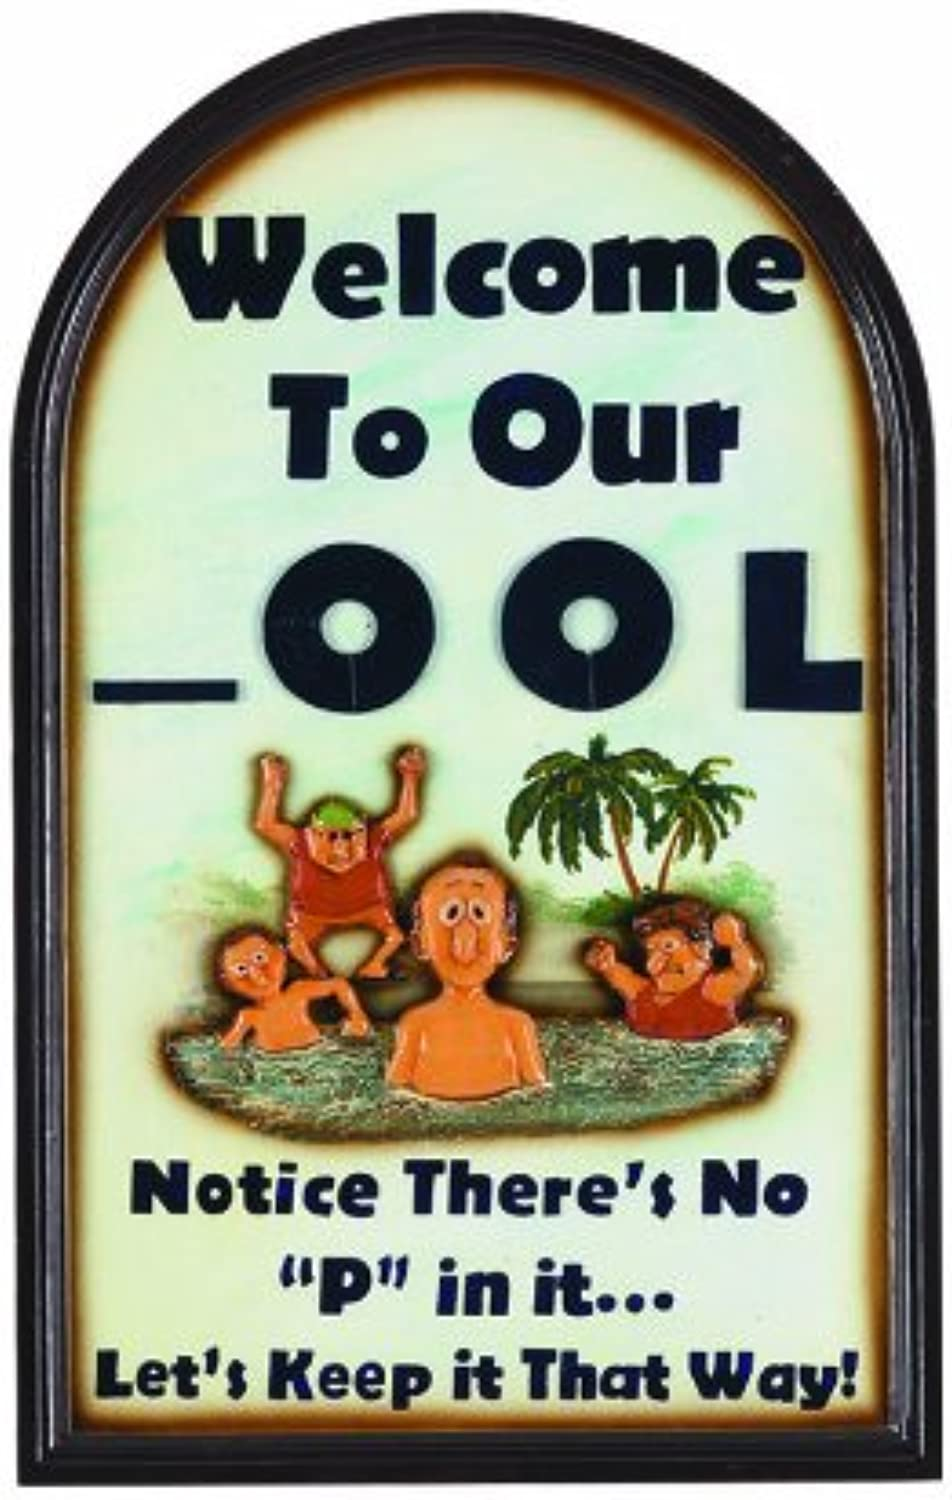 RAM Gameroom Products Outdoor Decor Sign, Welcome to Our_OOL - Notice There's No P in It Let's Keep It That Way